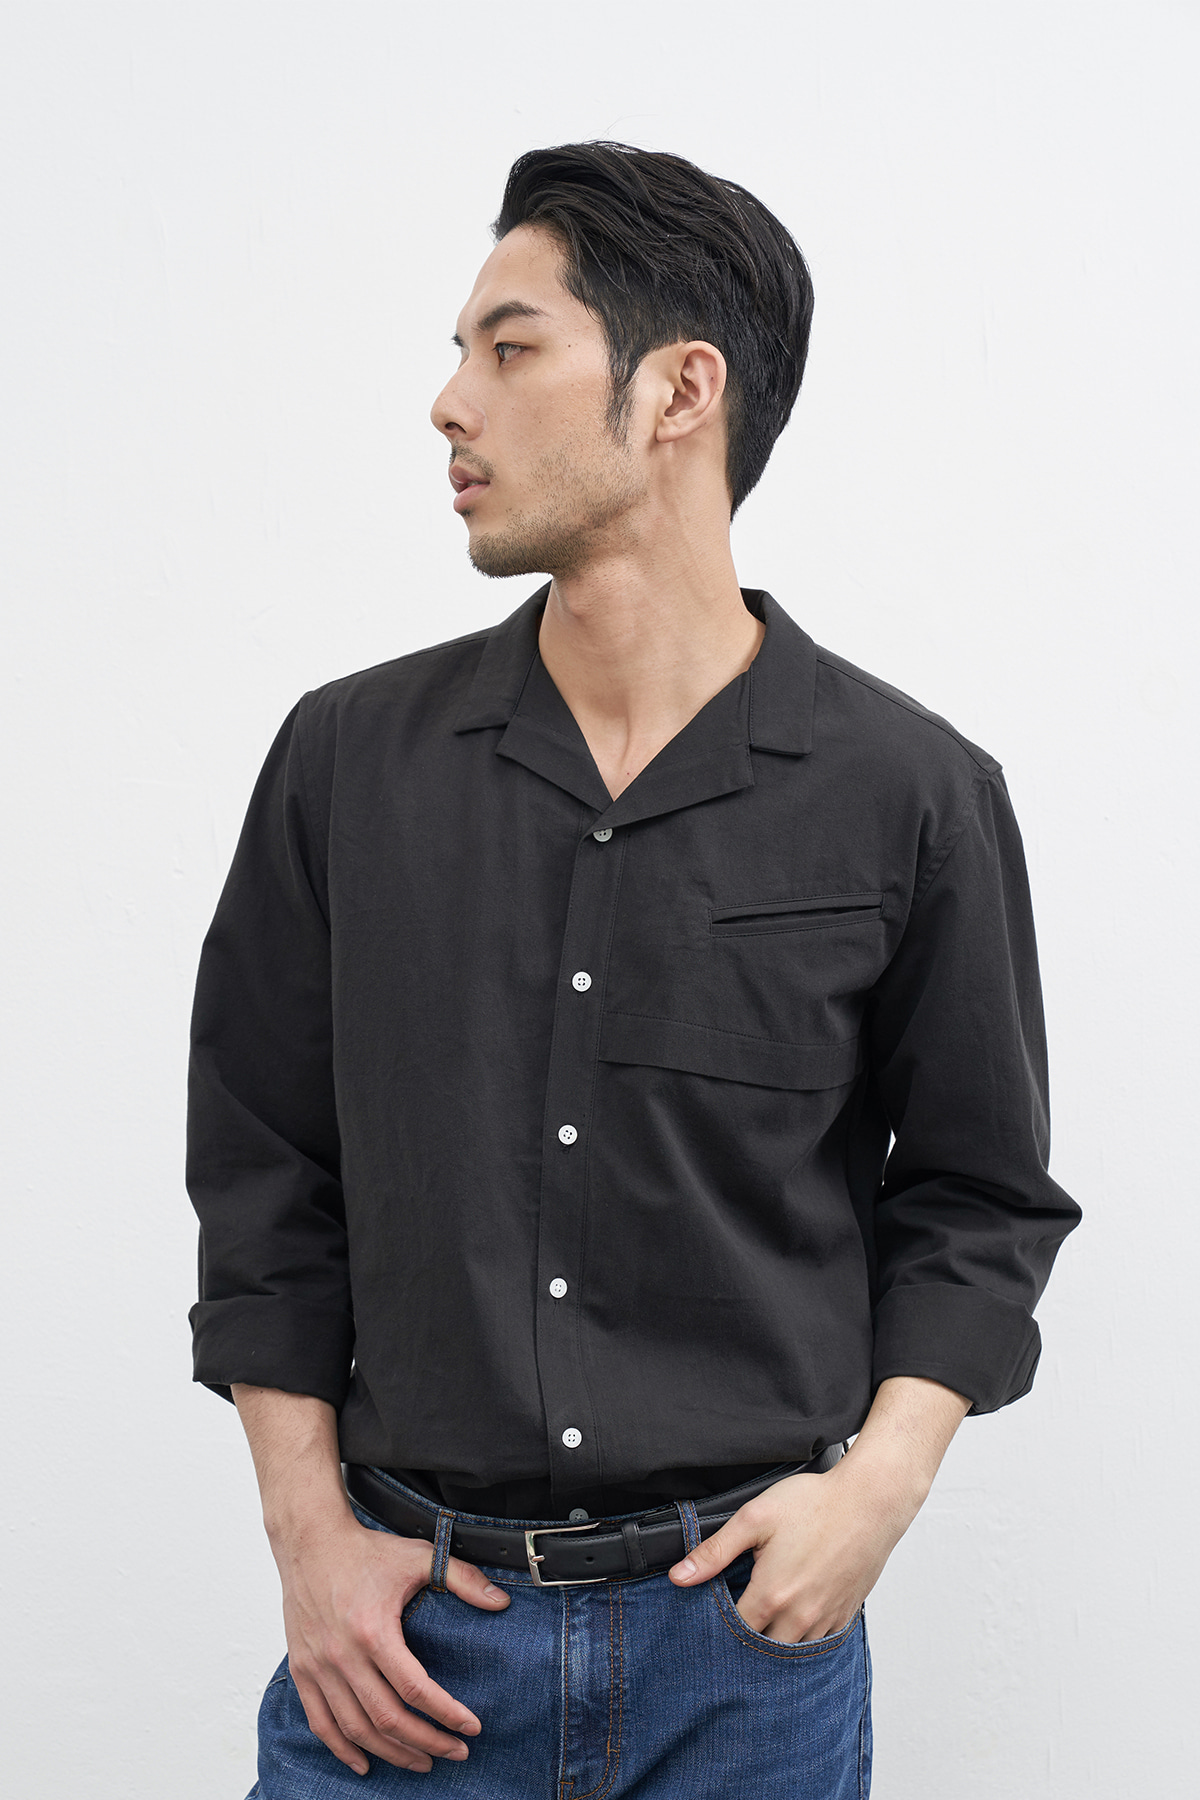 [3/5 예약배송] #jpbk13 Ishinomaki wide collar shirt